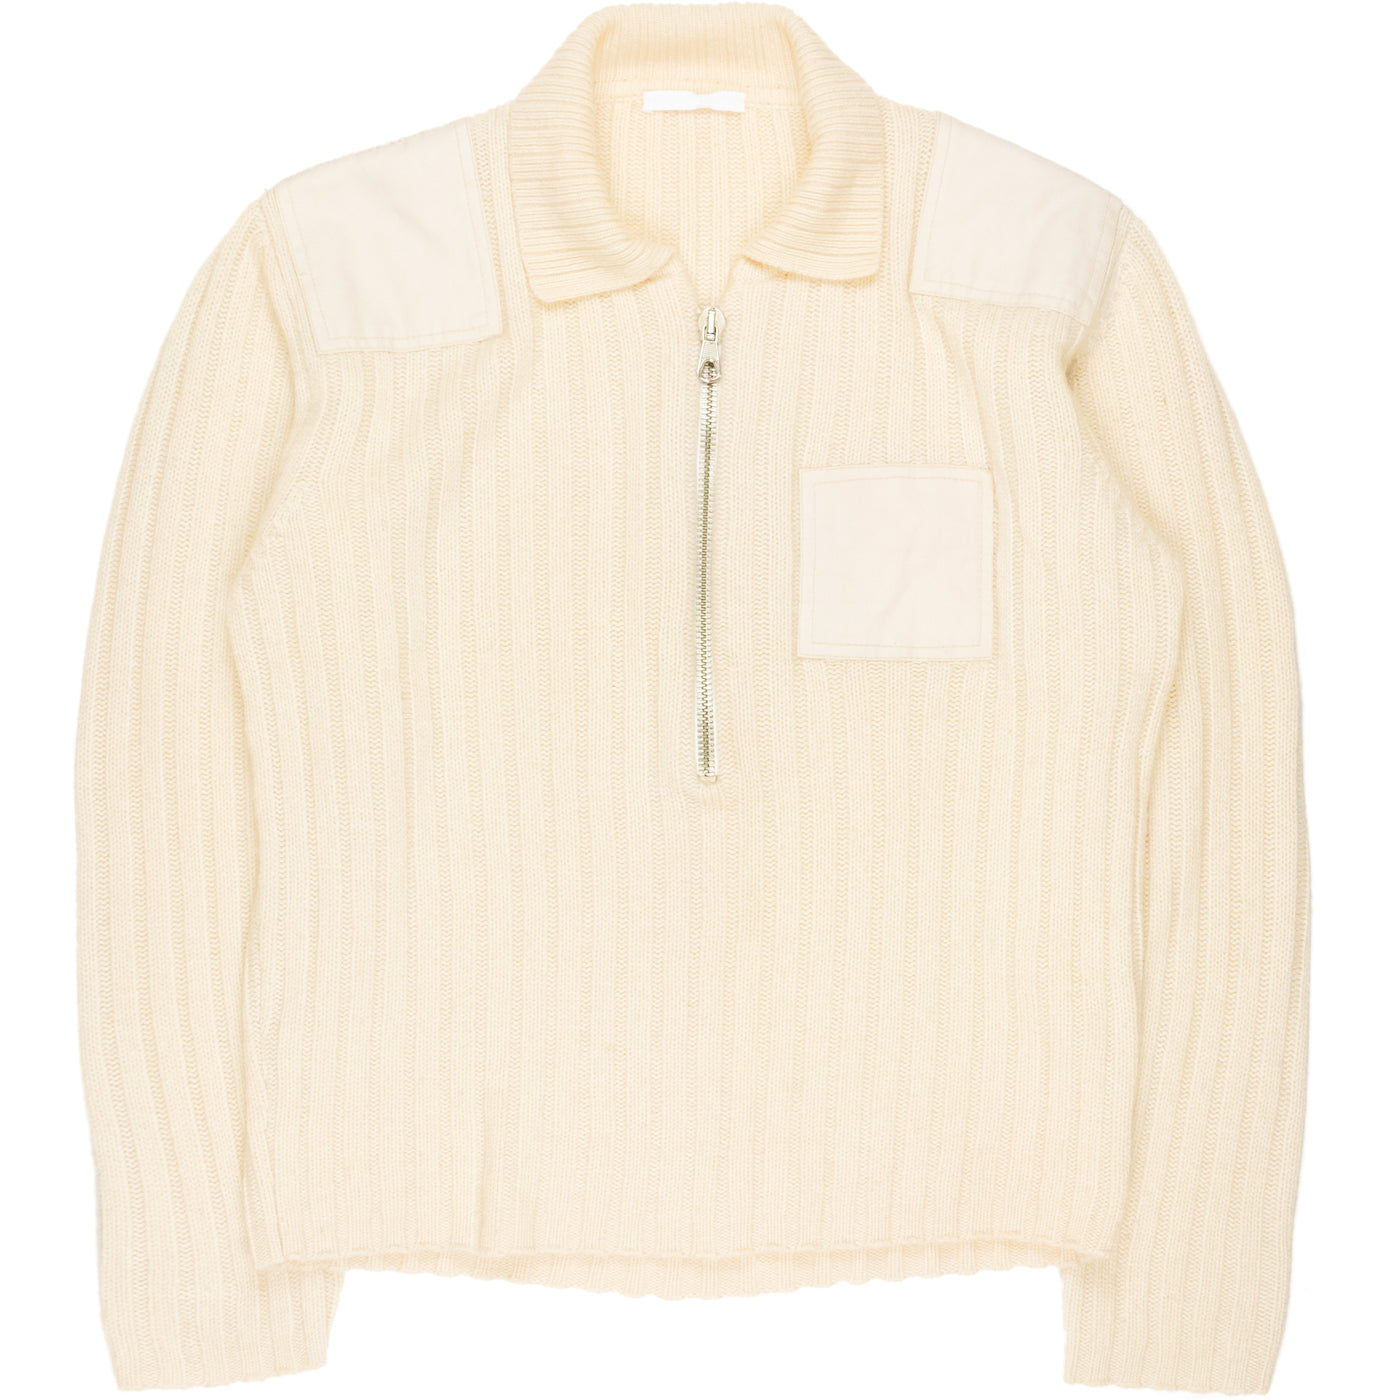 Helmut Lang Patched Knitted Sweater - AW98